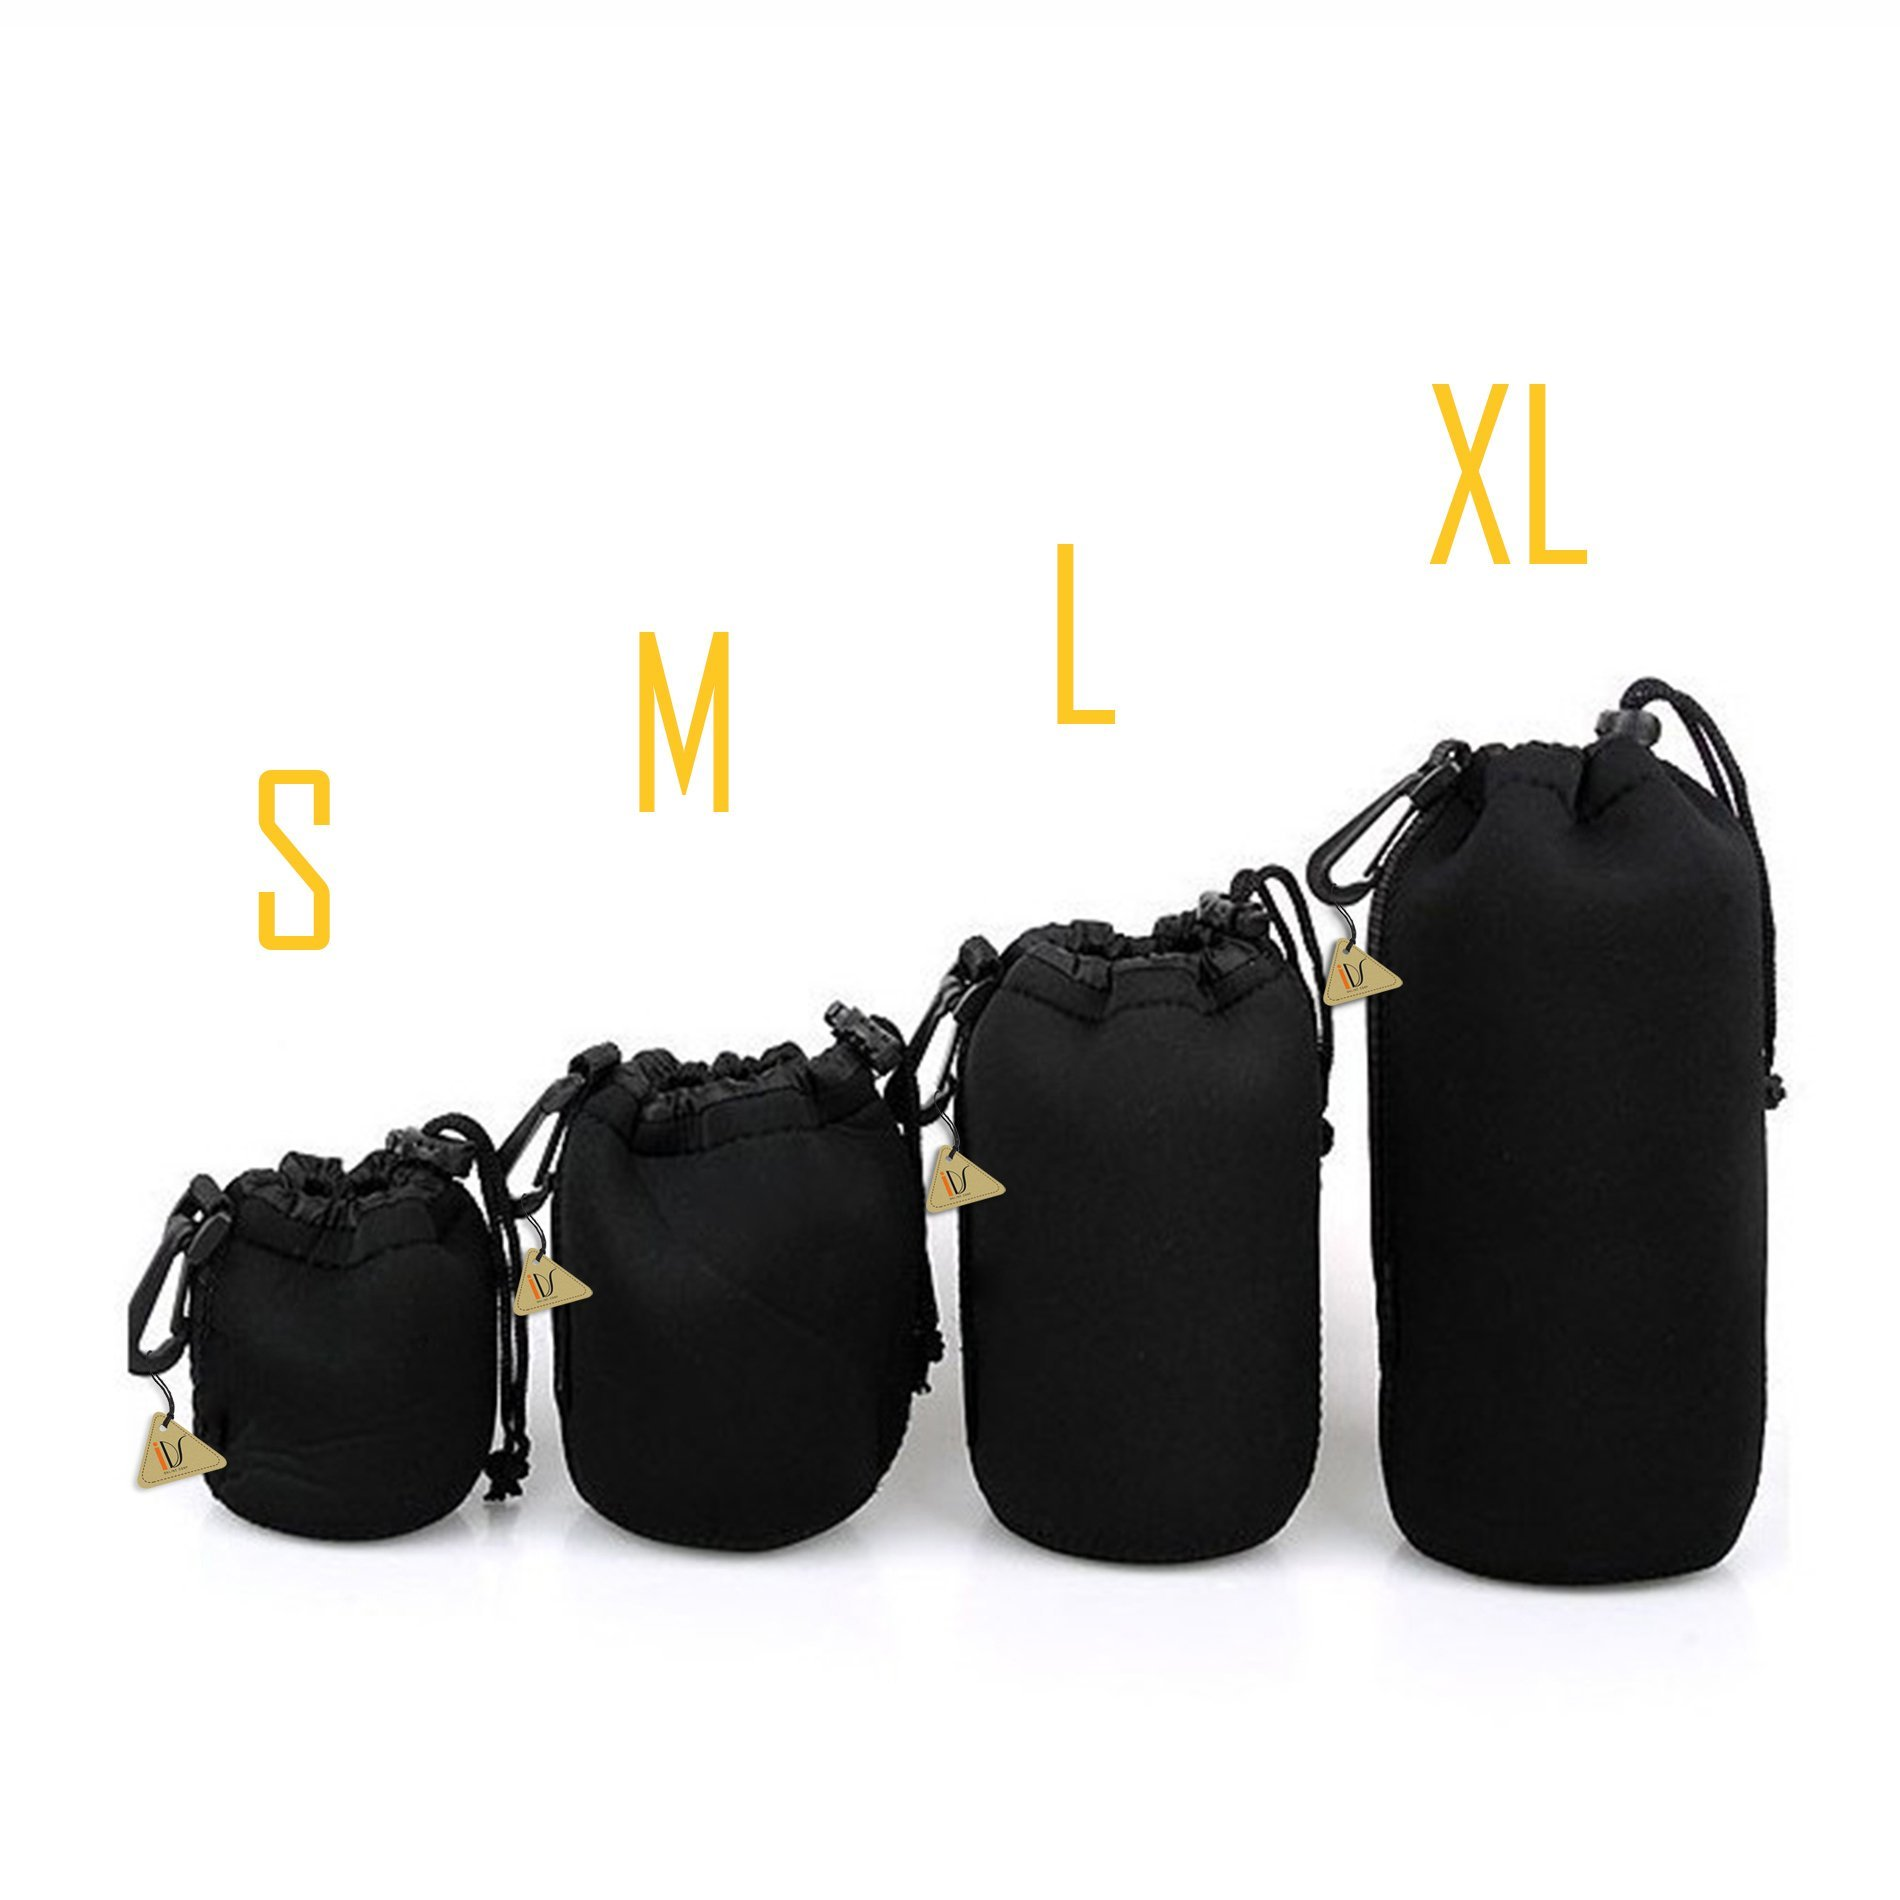 4Pcs Protective Neoprene Lens Pouch for Canon Nikon Sony Lenses S+M+L+XL by IDS Home